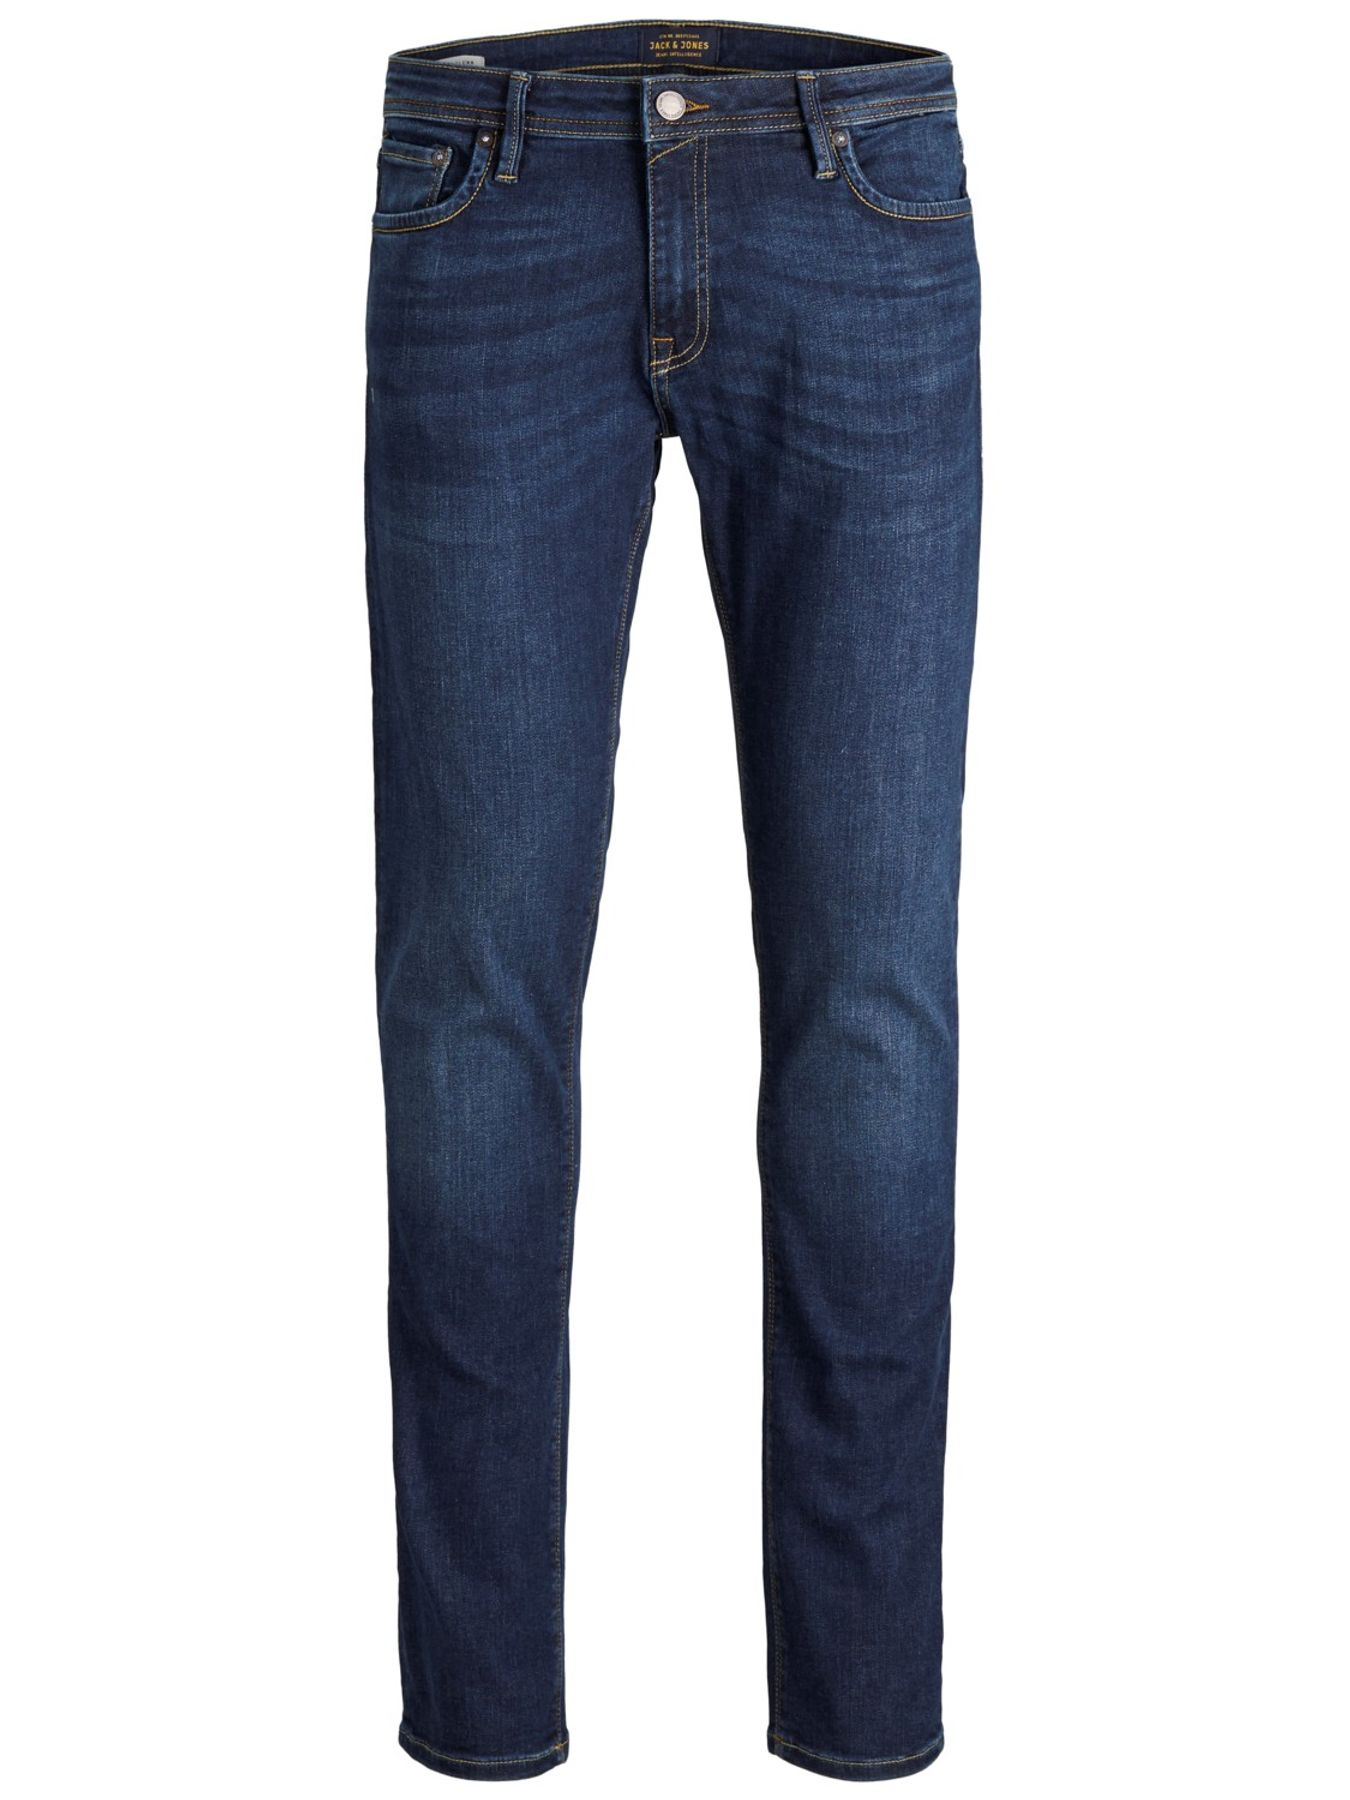 Jack & Jones - Herren Jeans, Slim Fit (Art. 12140464)